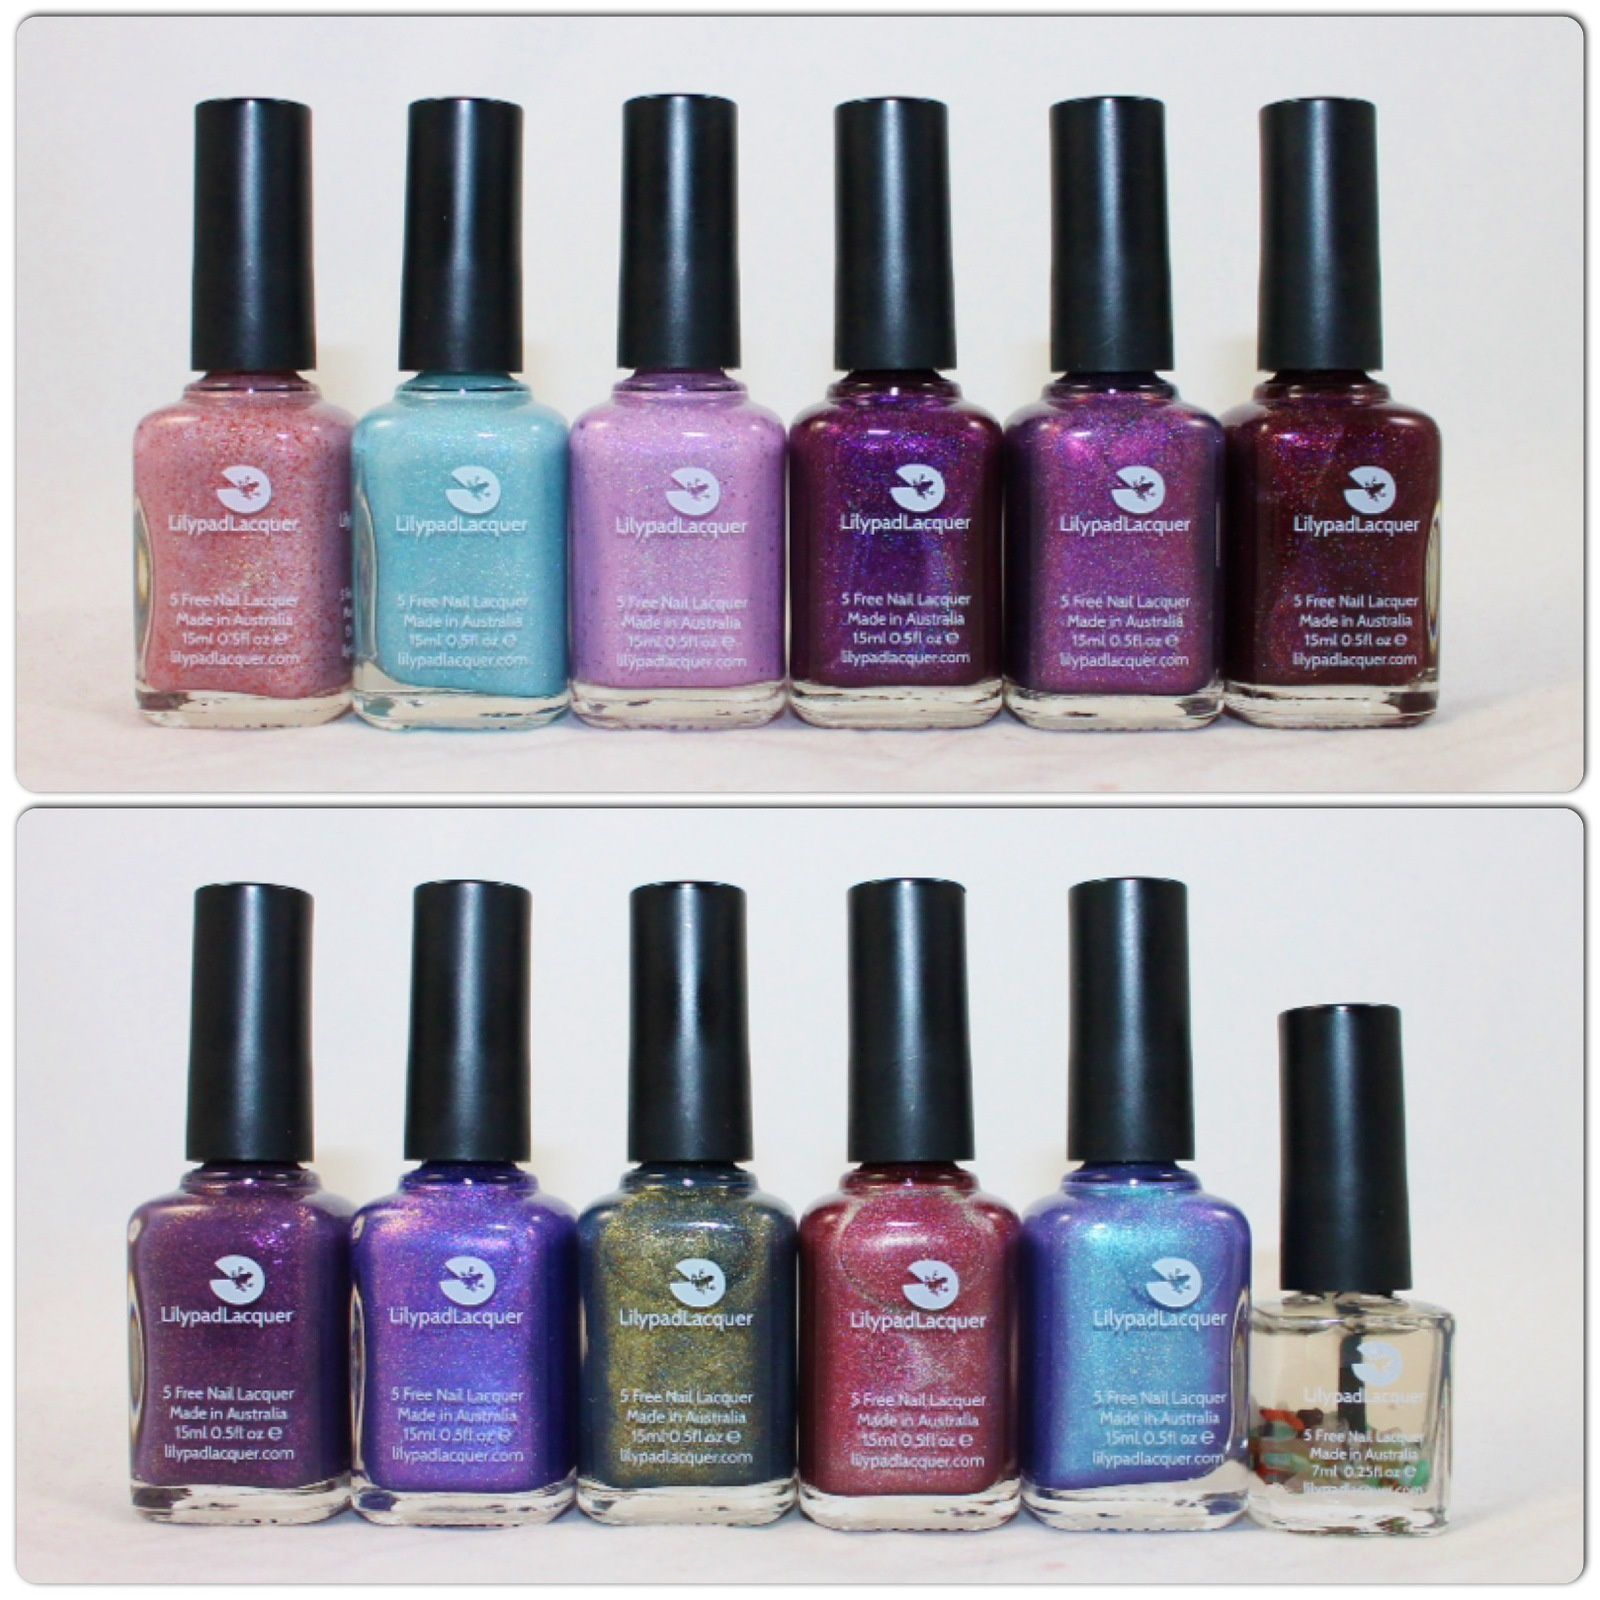 Lilypad Lacquer Pure, Fresh, Clean, Victorious, Queen, Fatale, Mulberry, Utopia, Antique, Ladyface, Sereniy & Crystal Clear.